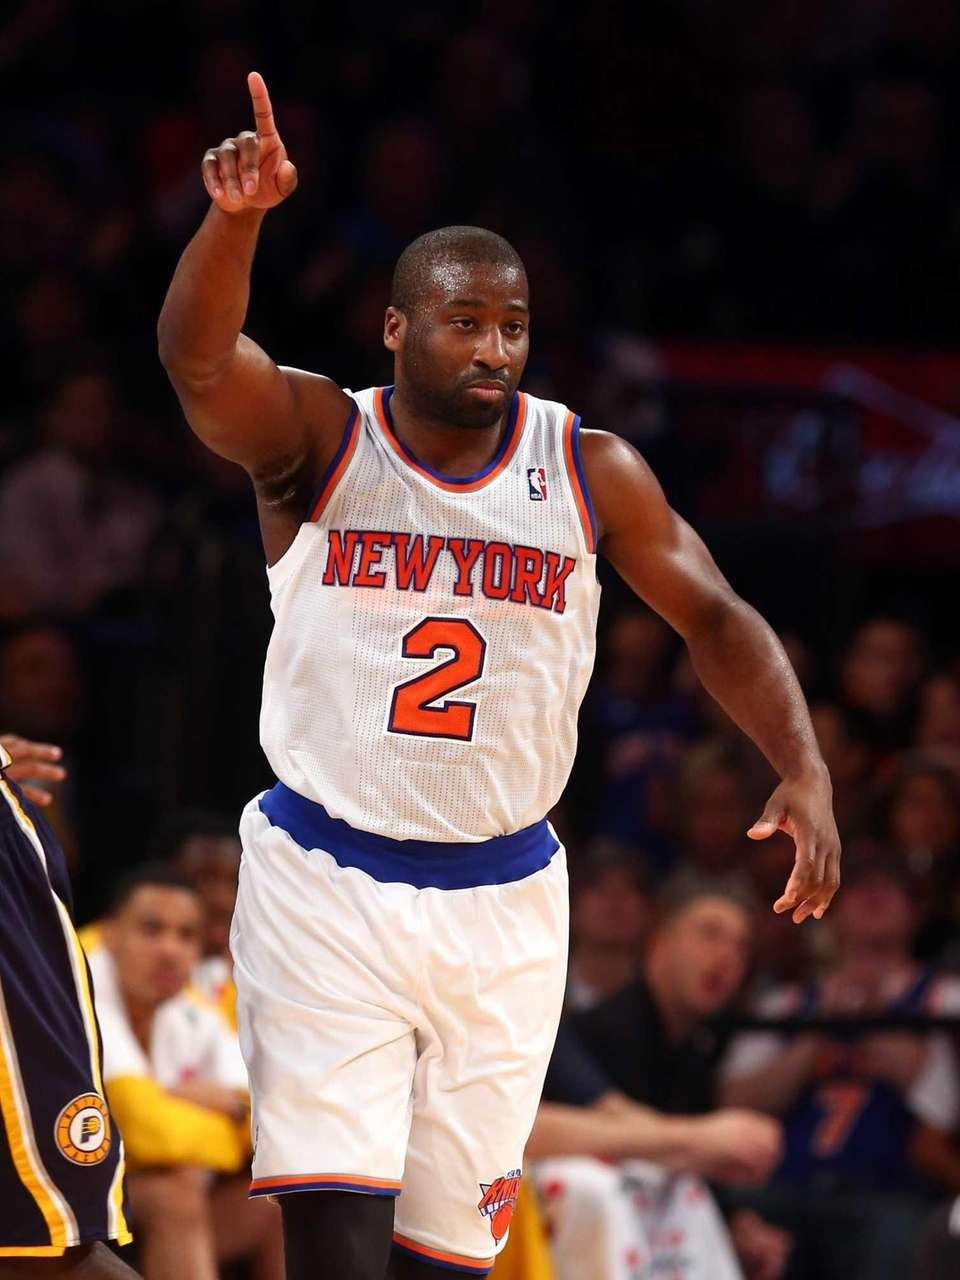 Raymond Felton celebrates after hitting a three-point shot